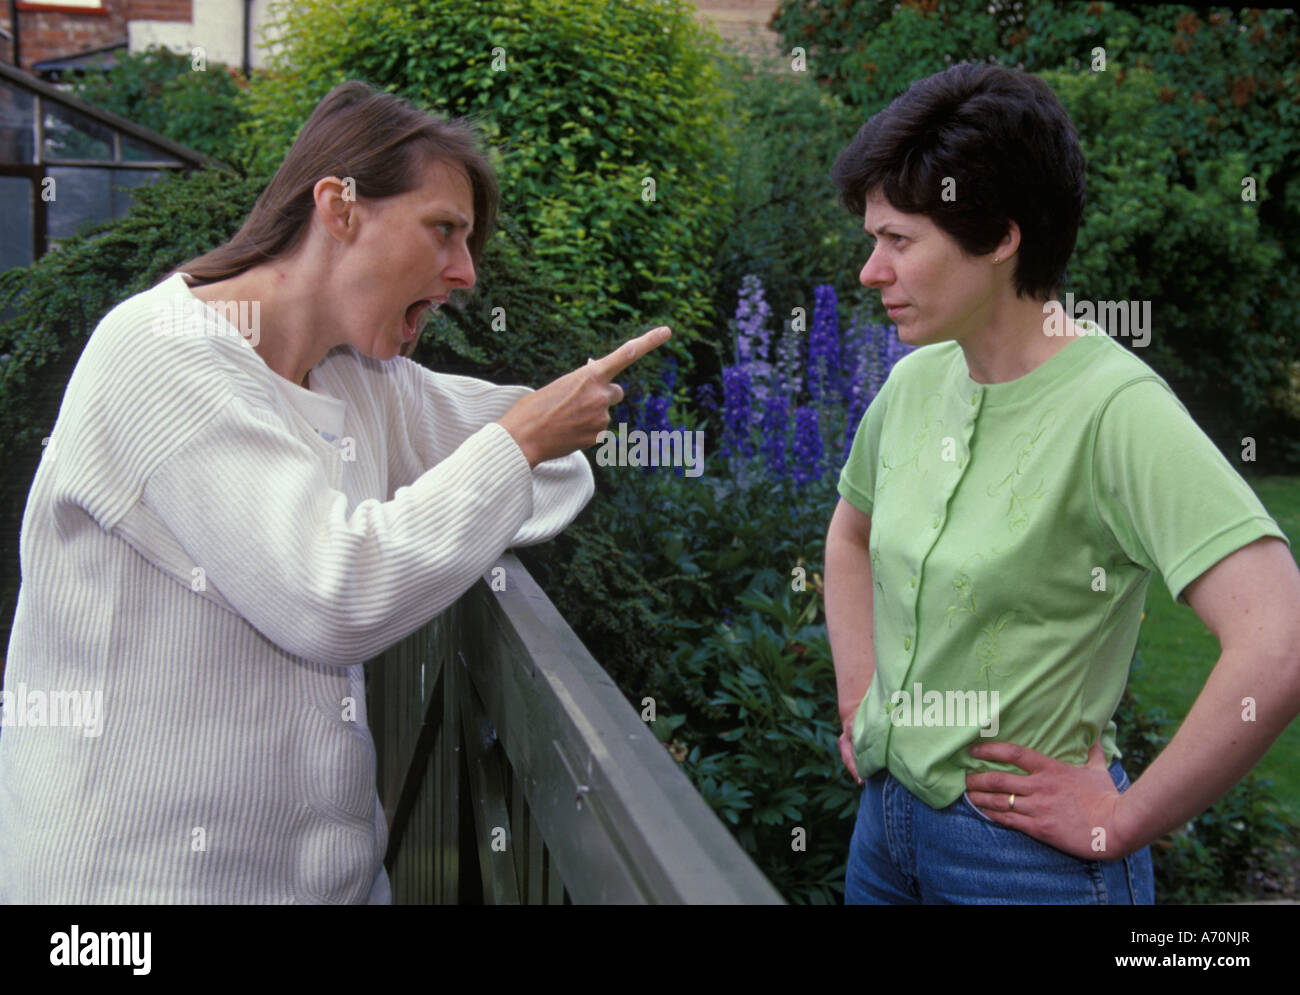 two women fighting over the fence - Stock Image